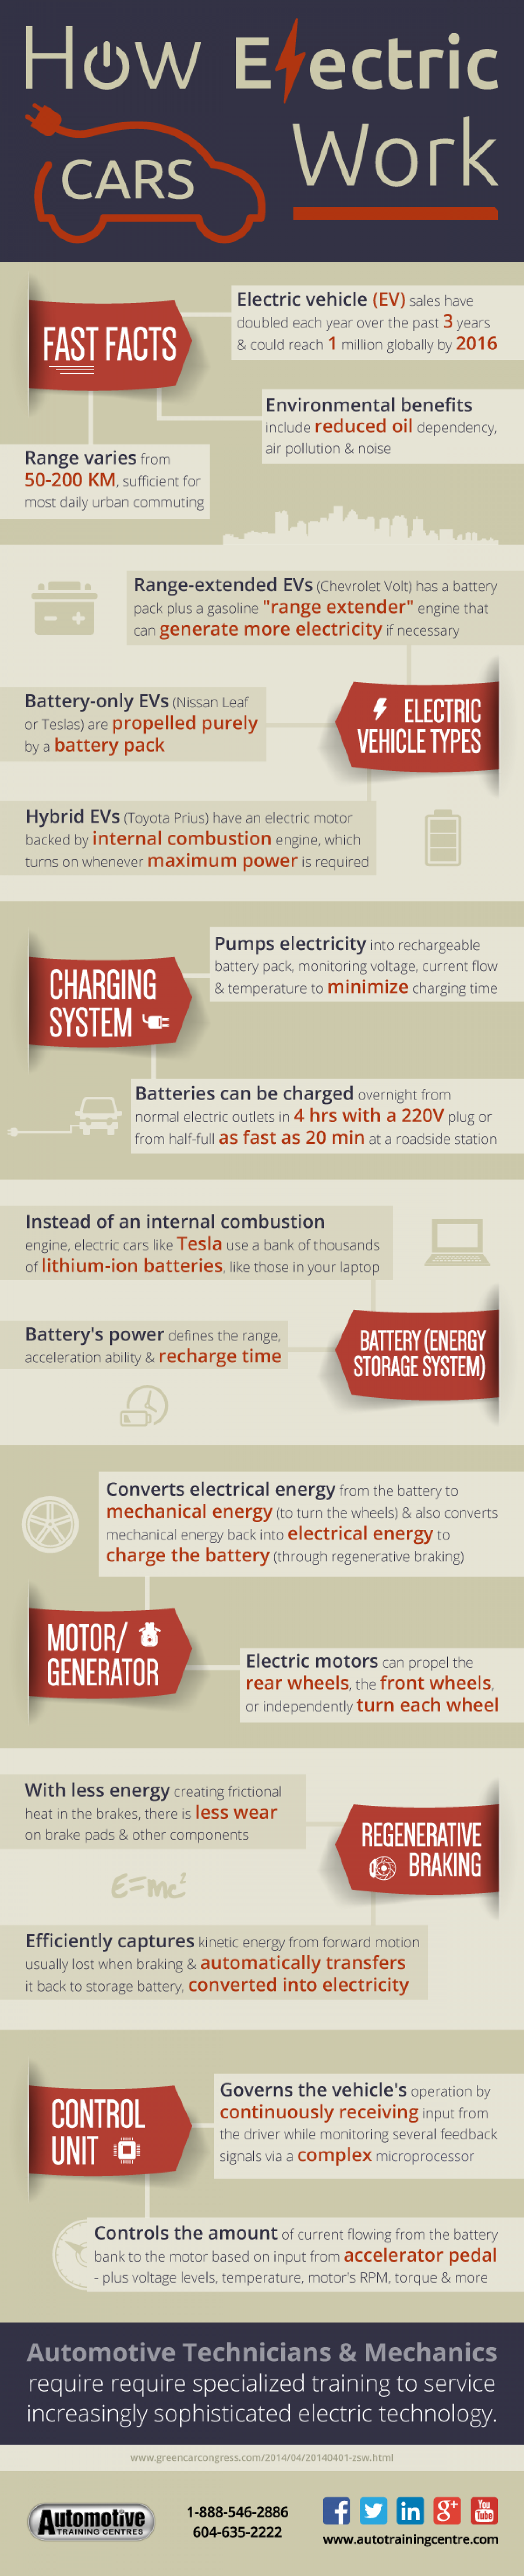 How Electric Cars Work Infographic